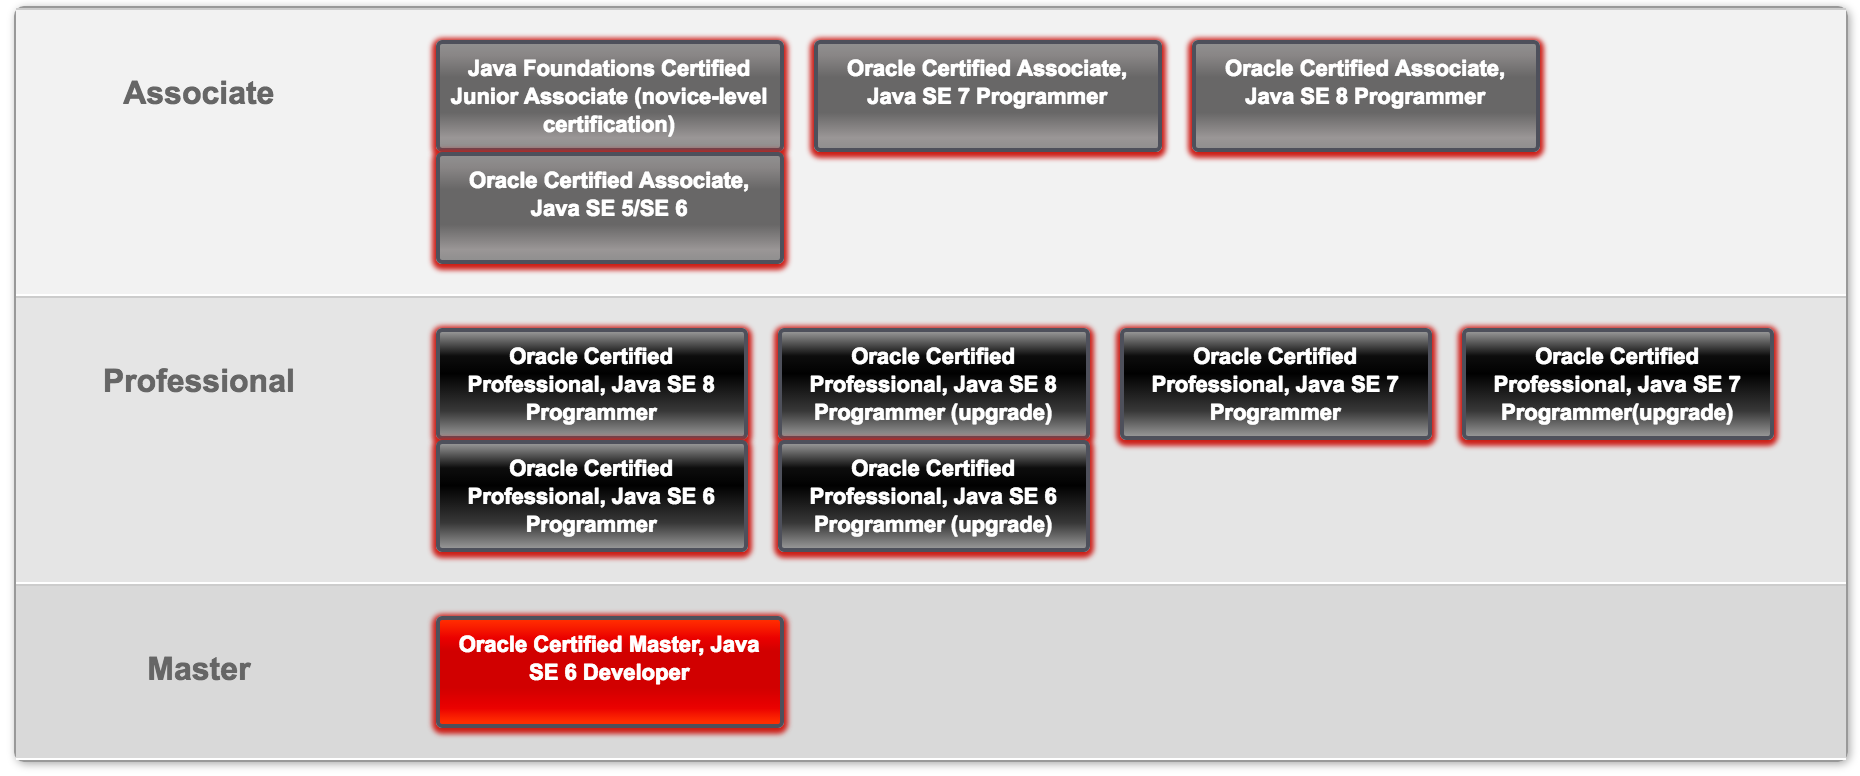 How did I become Certified Oracle Associate - Marko B - Medium